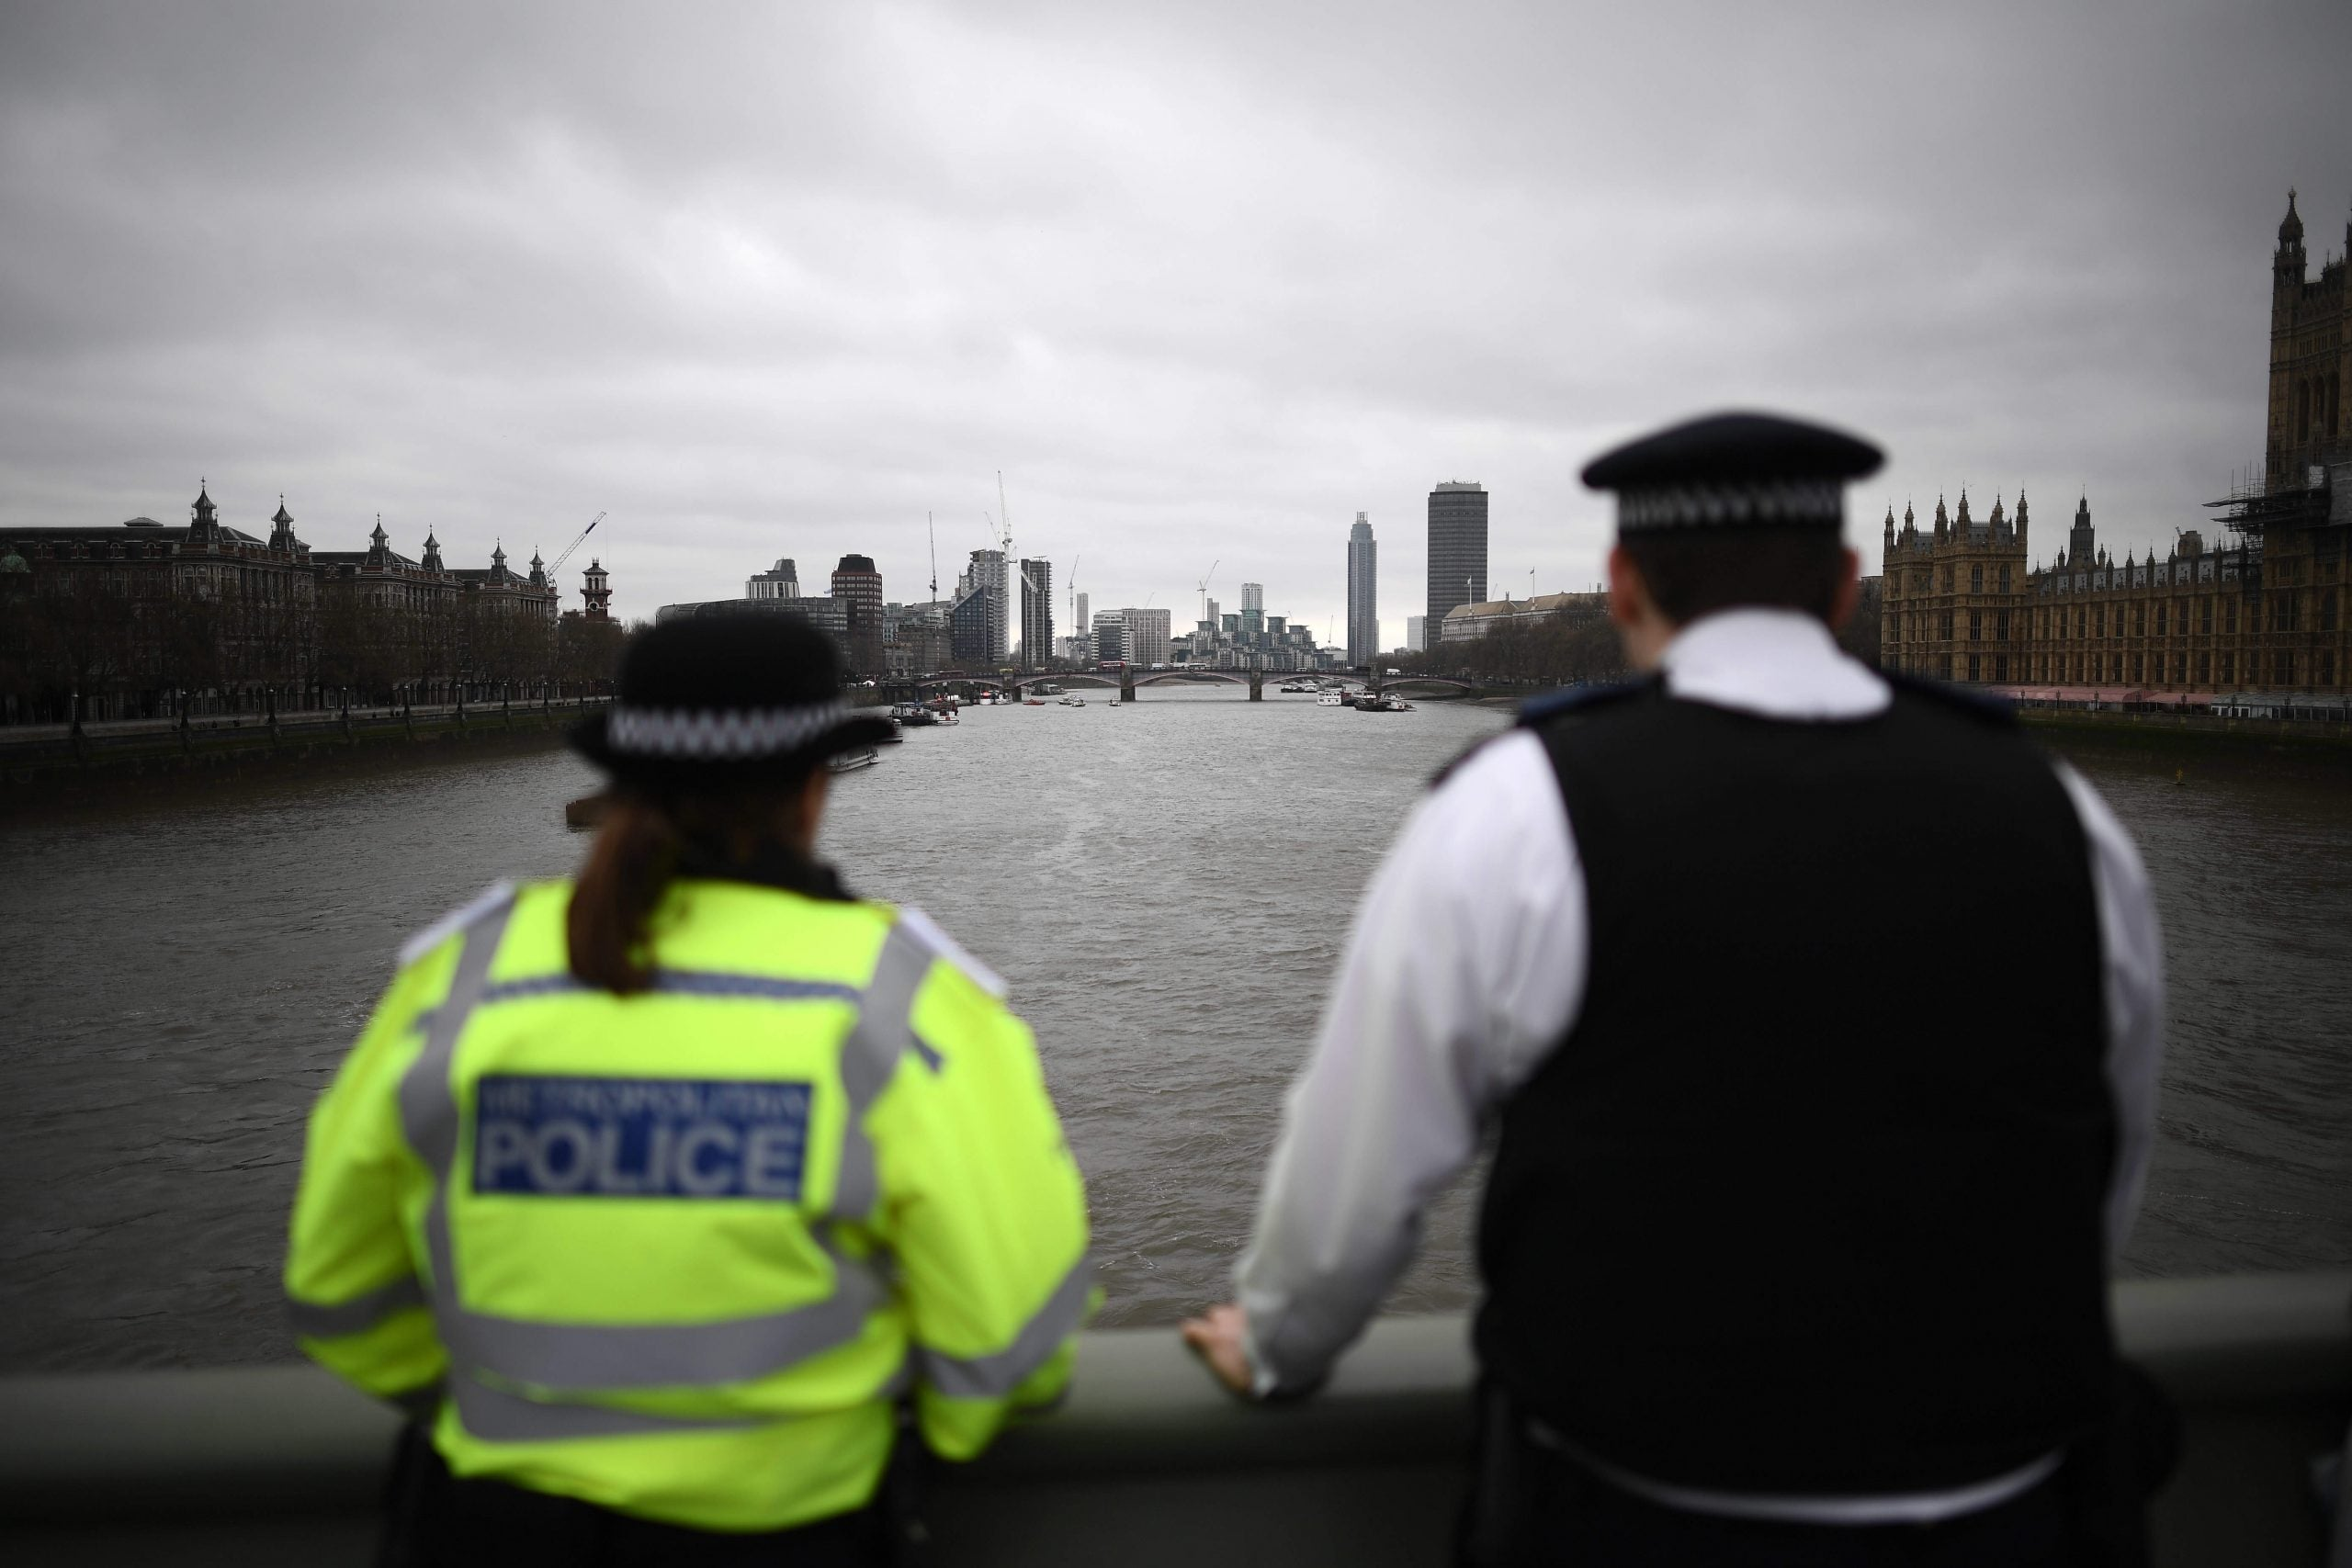 Crime is falling? Not anymore, thanks to the Conservatives' cuts